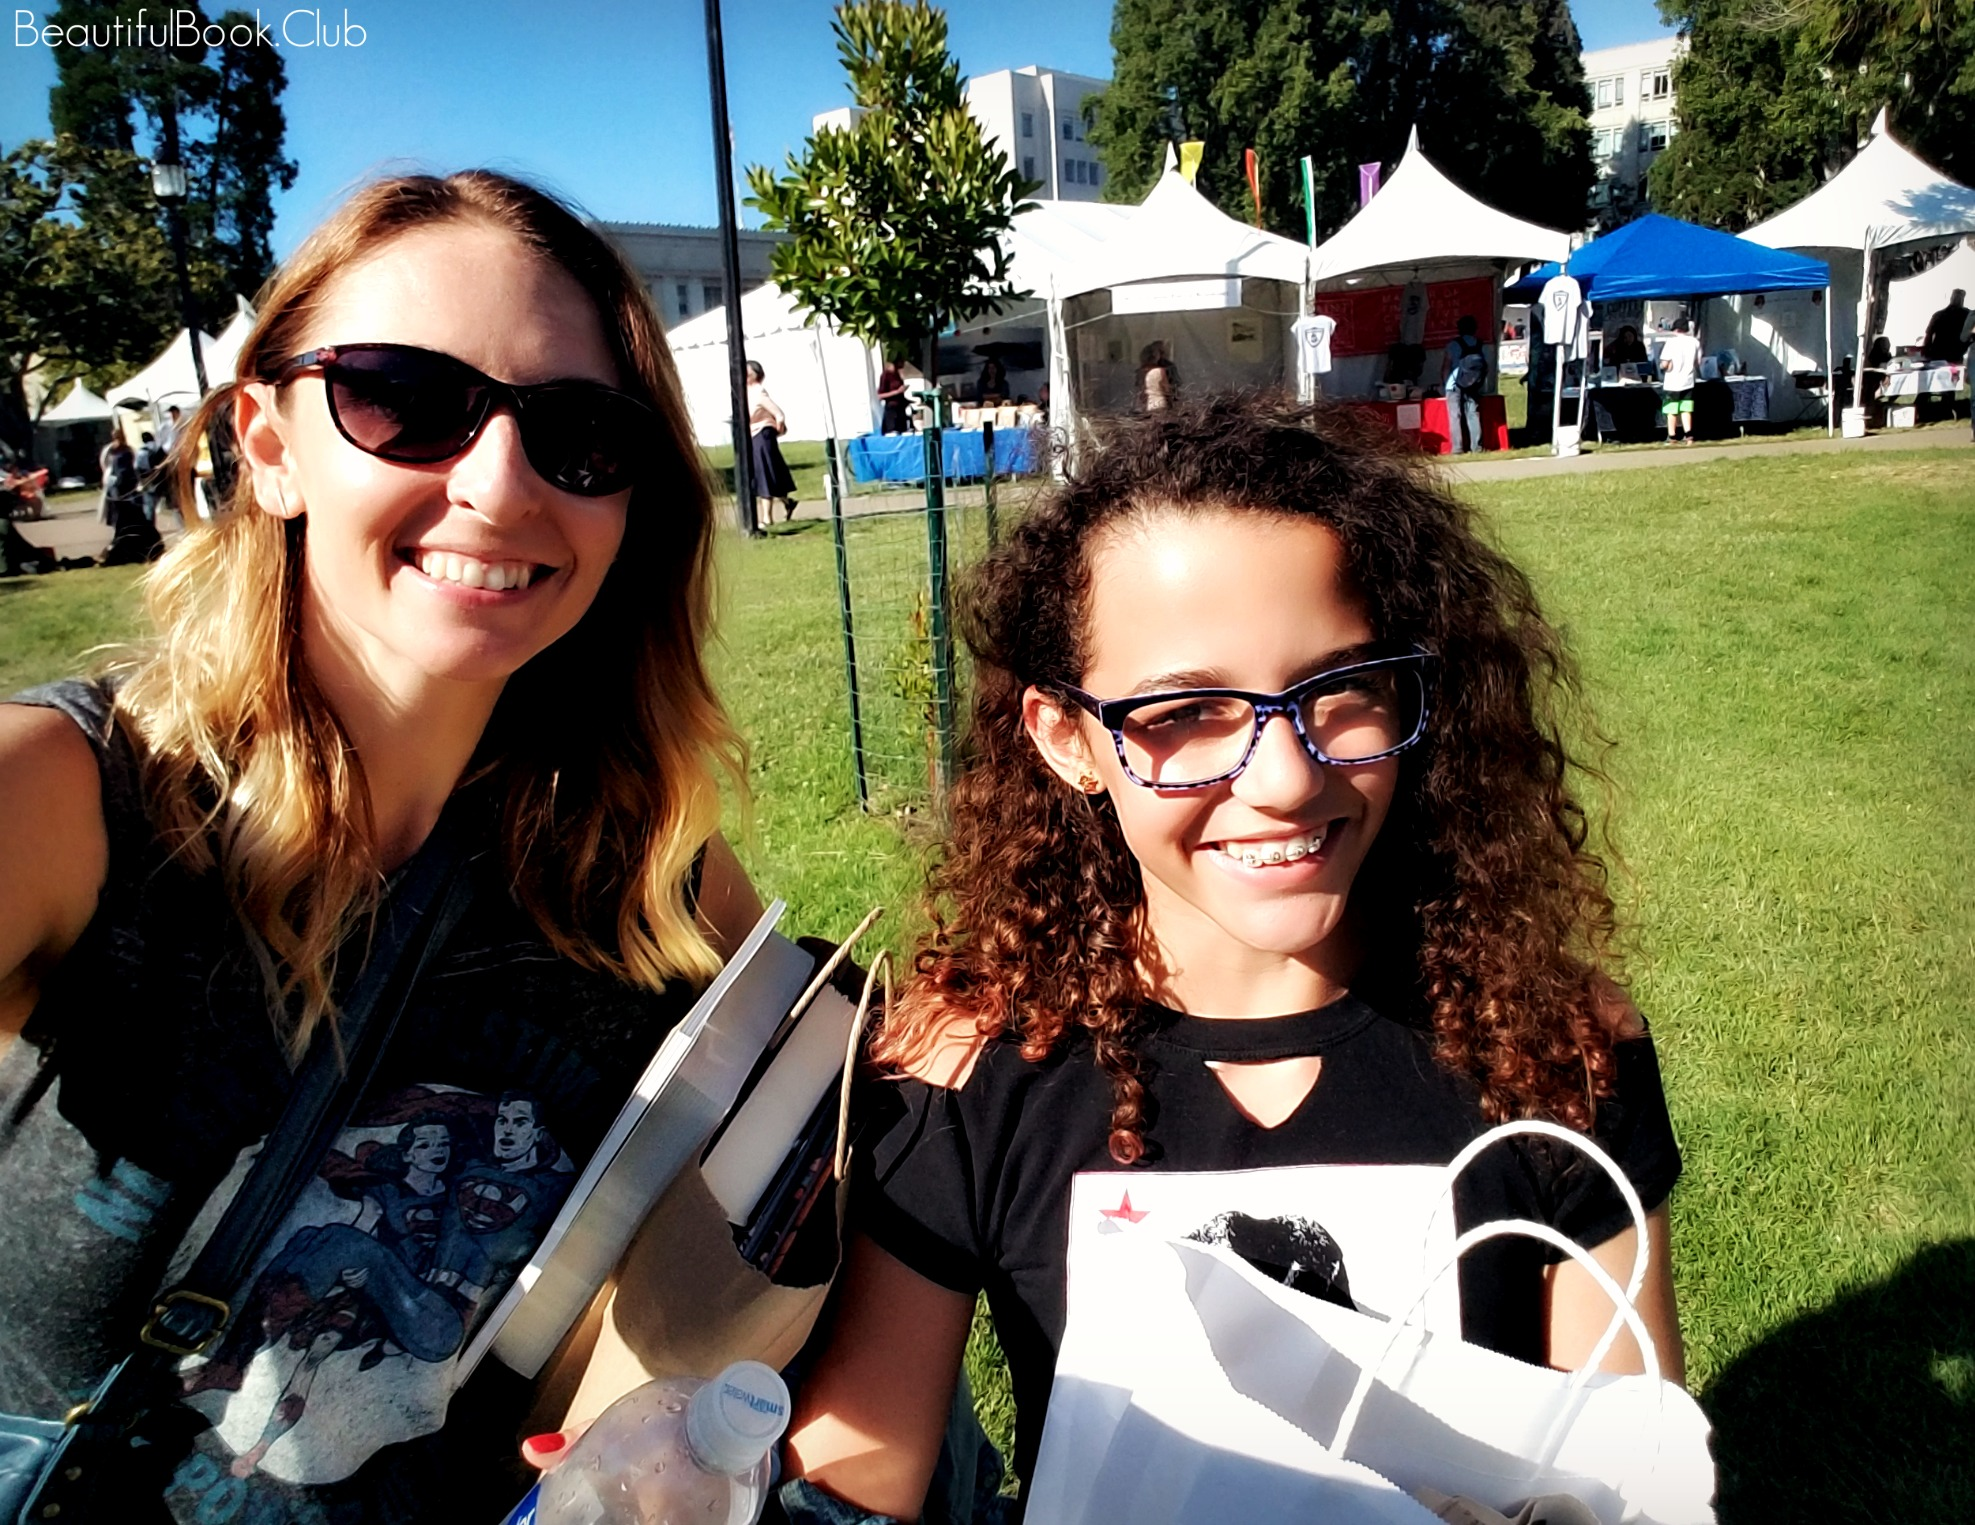 Bay Area Book Festival selfie with book booths and tons of books